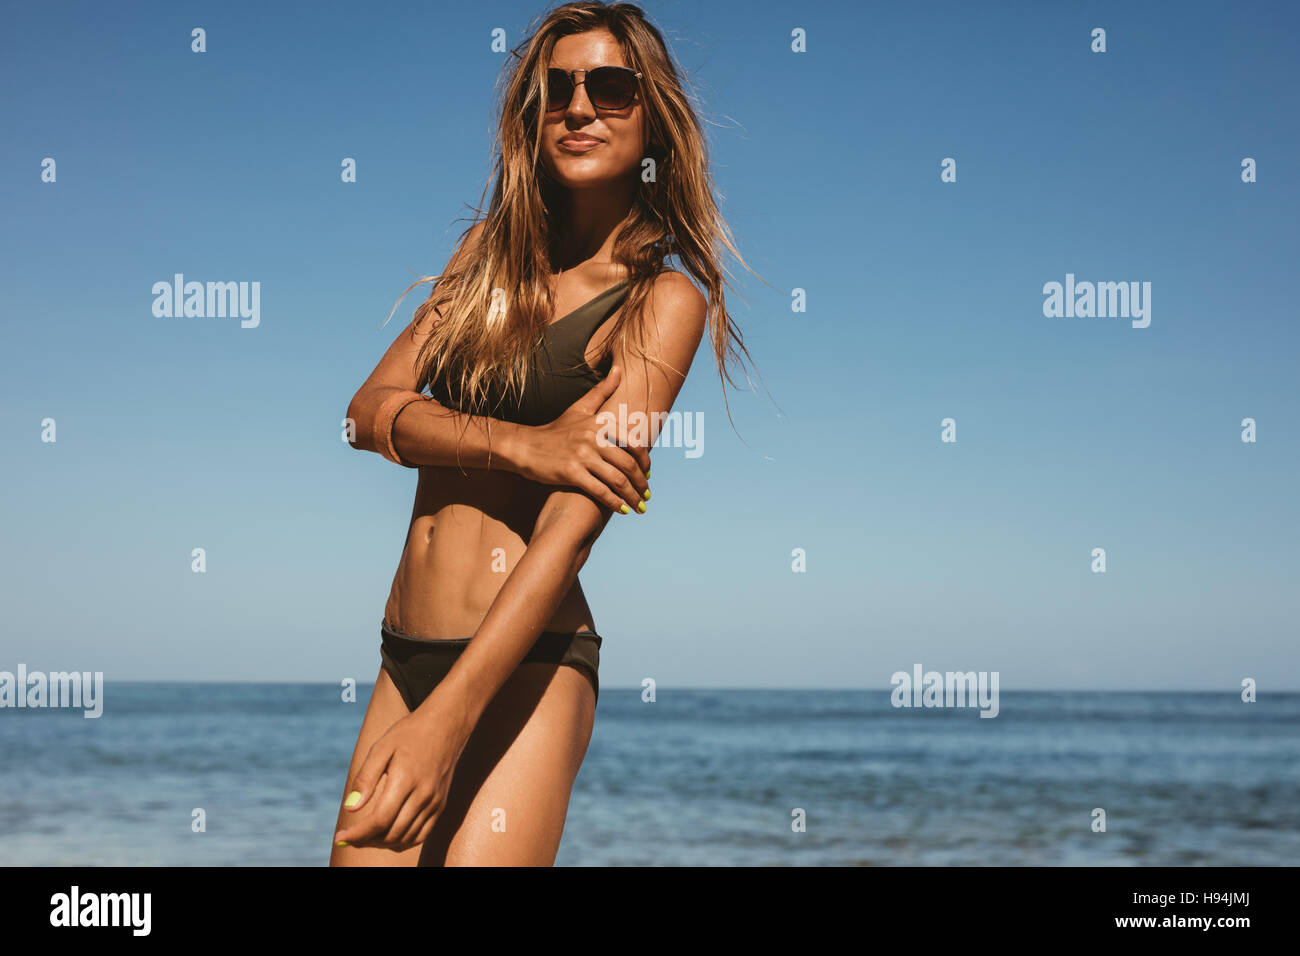 6ba661642b Portrait of young woman in sunglasses and swimsuit on the beach. Female  model posing in bikini on the sea shore on a summer day.